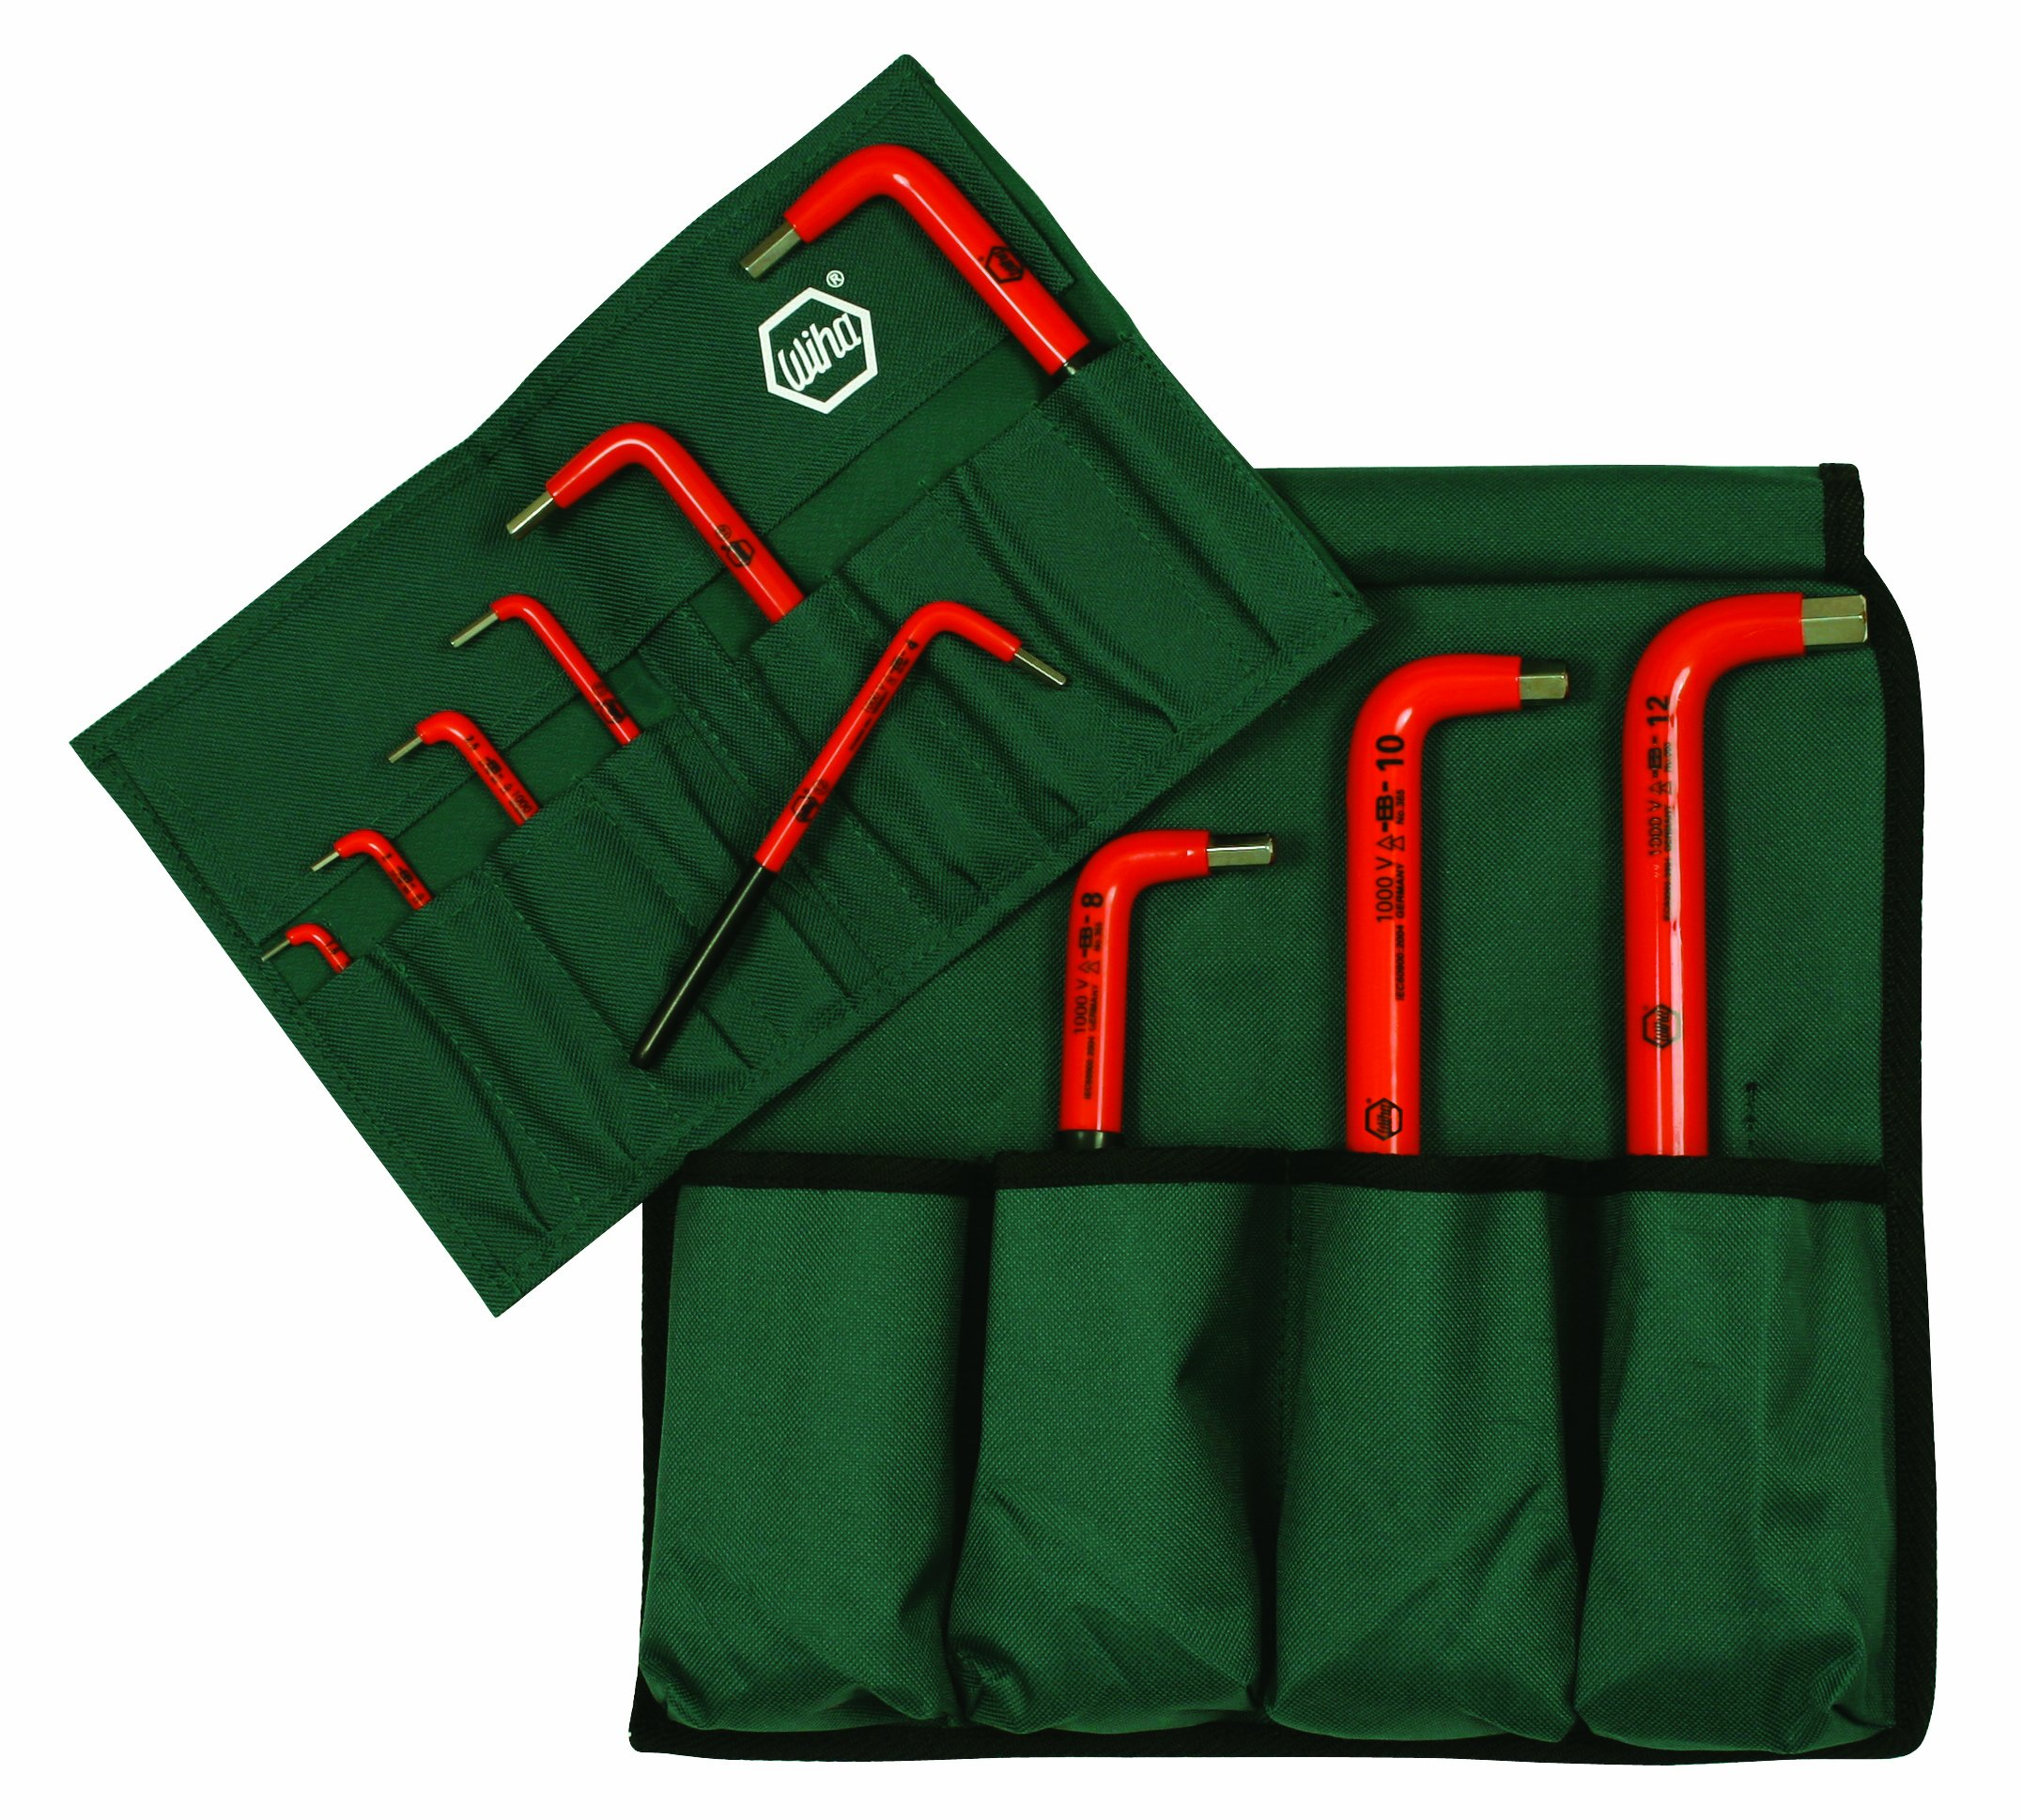 Wiha 13693 Insulated Metric Hex L-Key Set, 1.5-12.0mm 10 Piece In Canvas Pouch